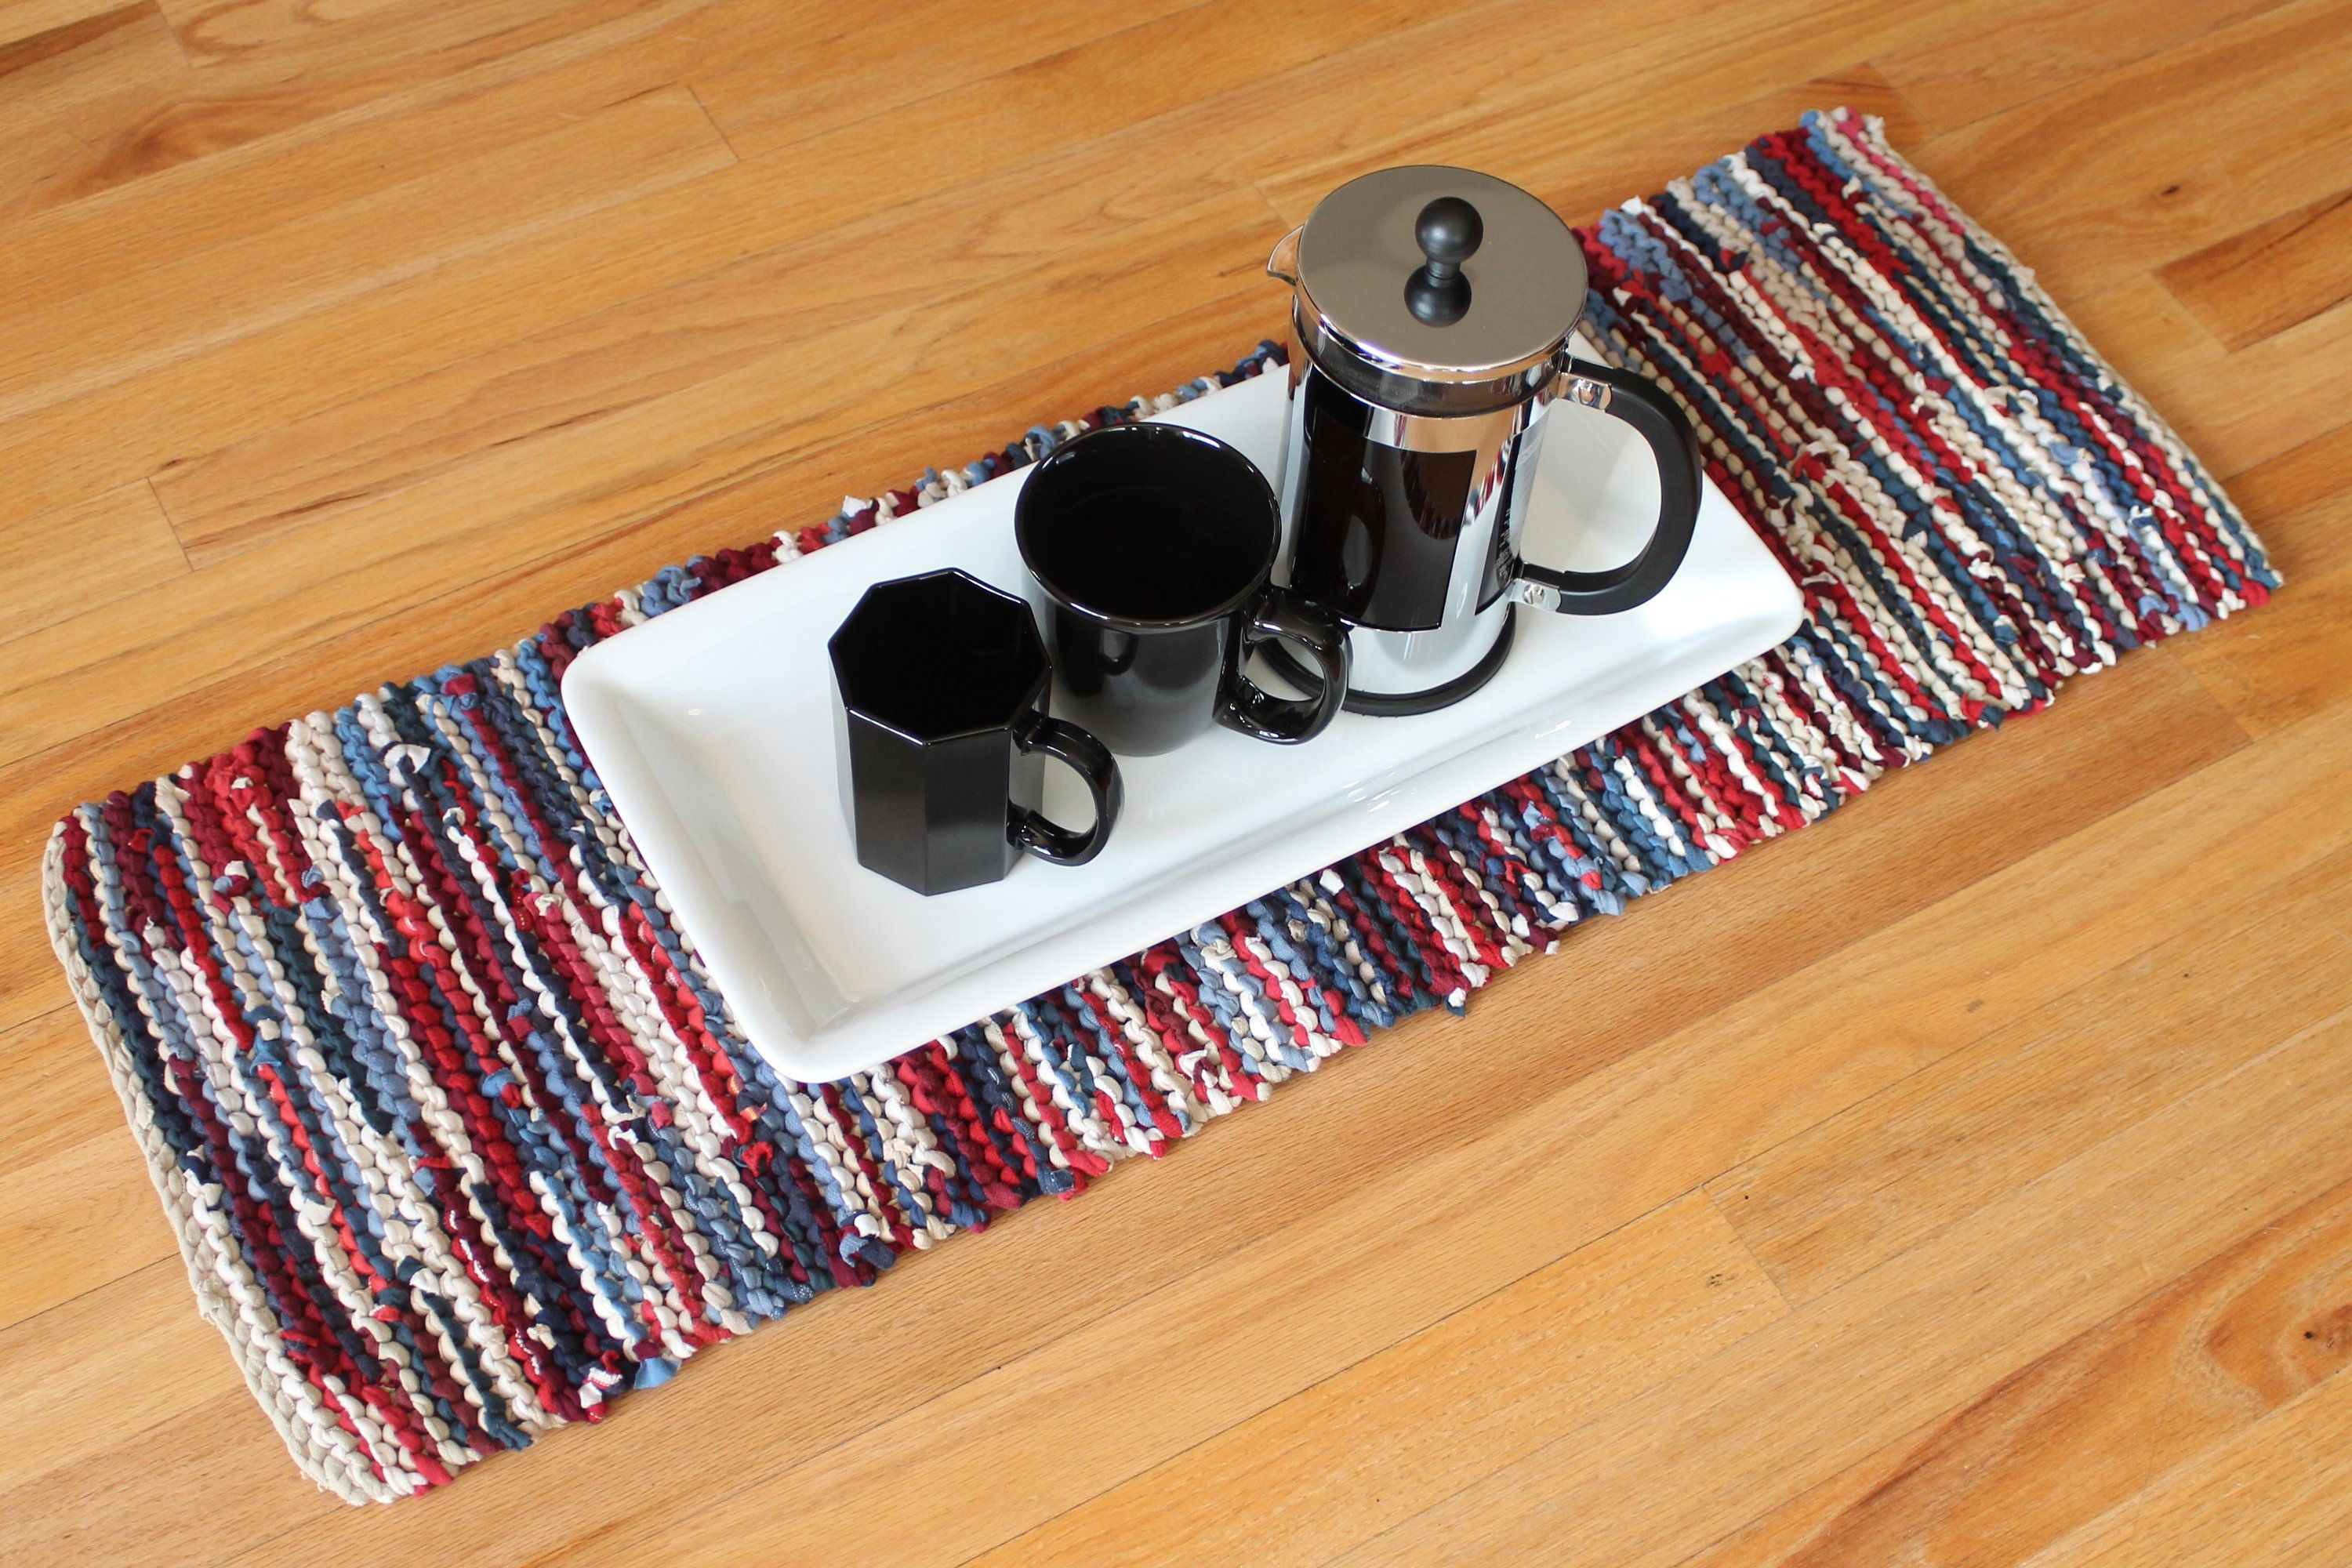 Admirable Americana Table Runner Red White Blue Navy Nautical Cottage Download Free Architecture Designs Intelgarnamadebymaigaardcom